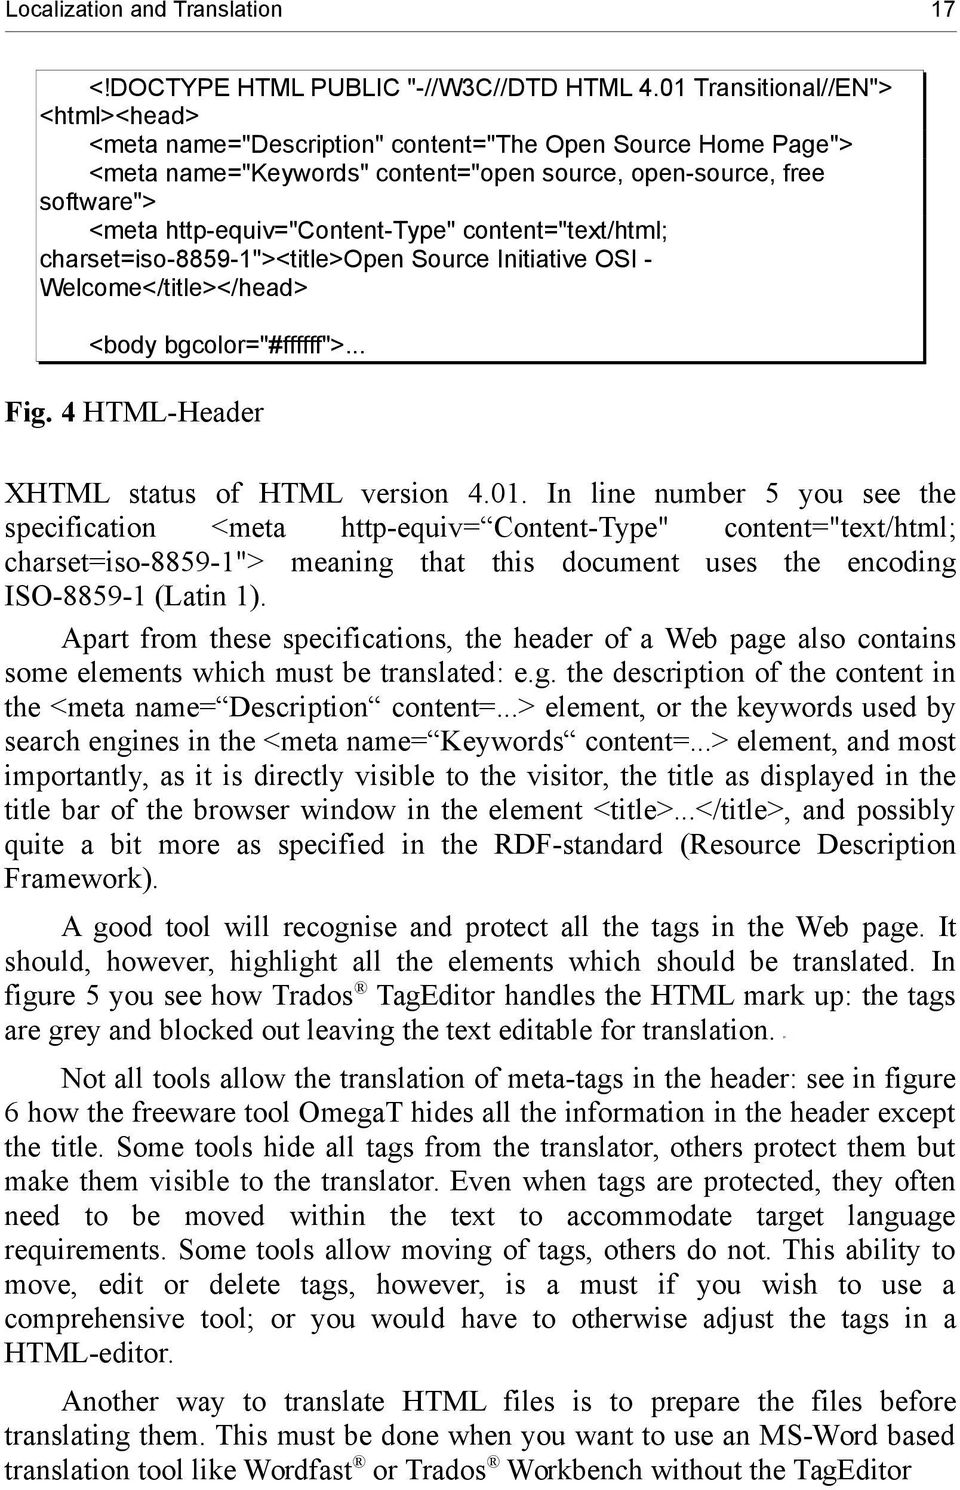 "http-equiv=""content-type"" content=""text/html; charset=iso-8859-1""><title>open Source Initiative OSI - Welcome</title></head> <body bgcolor=""#ffffff"">... Fig."